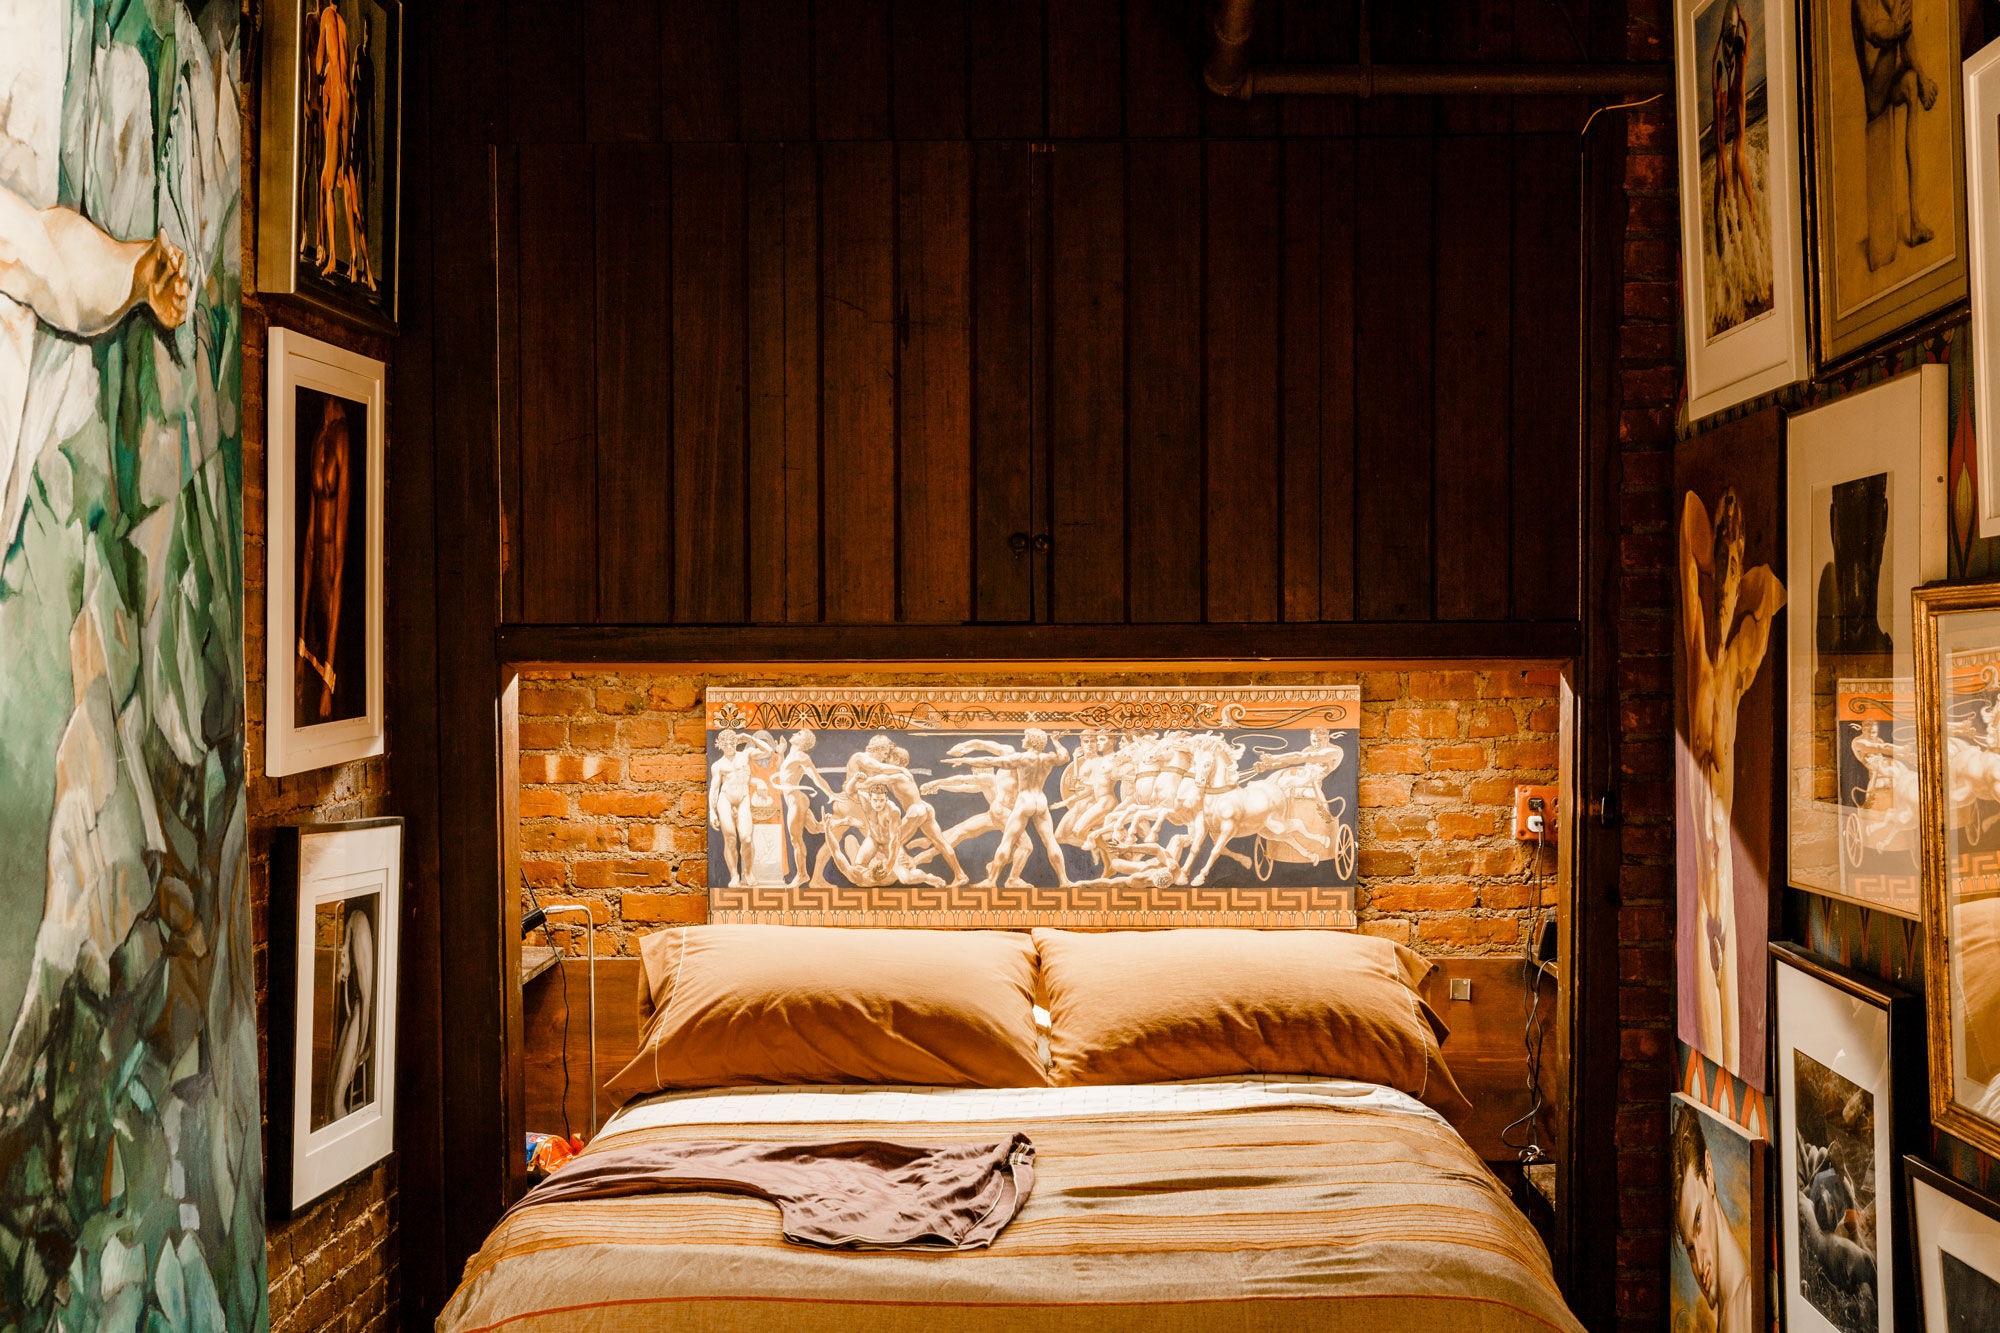 A Greek-inspired frieze by James Childs (2004) decorates the bed in the guest room. On the left, Andrew Sichel's Before Time Changes Them (1970), which Leslie purchased when it was rejected from the artist's thesis exhibition. Photo by Max Burkhalter for Artsy.